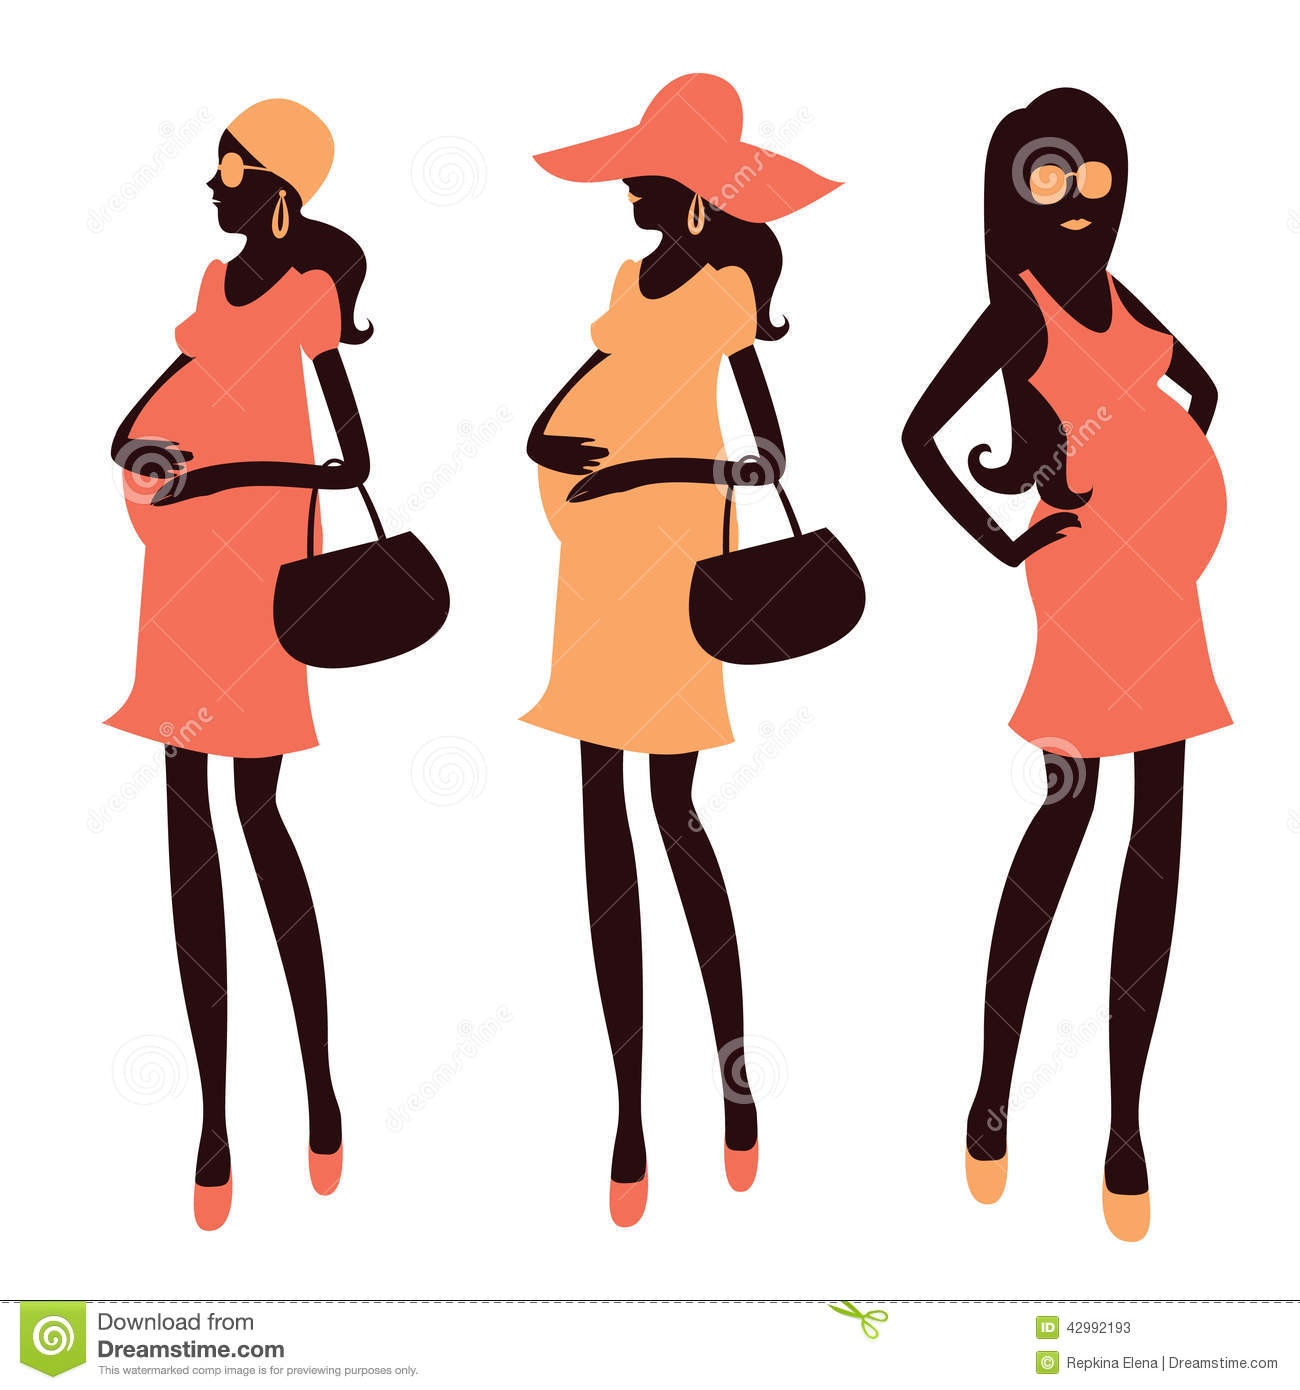 Fashionable Pregnancy And Maternity Clipart Stock Vector.